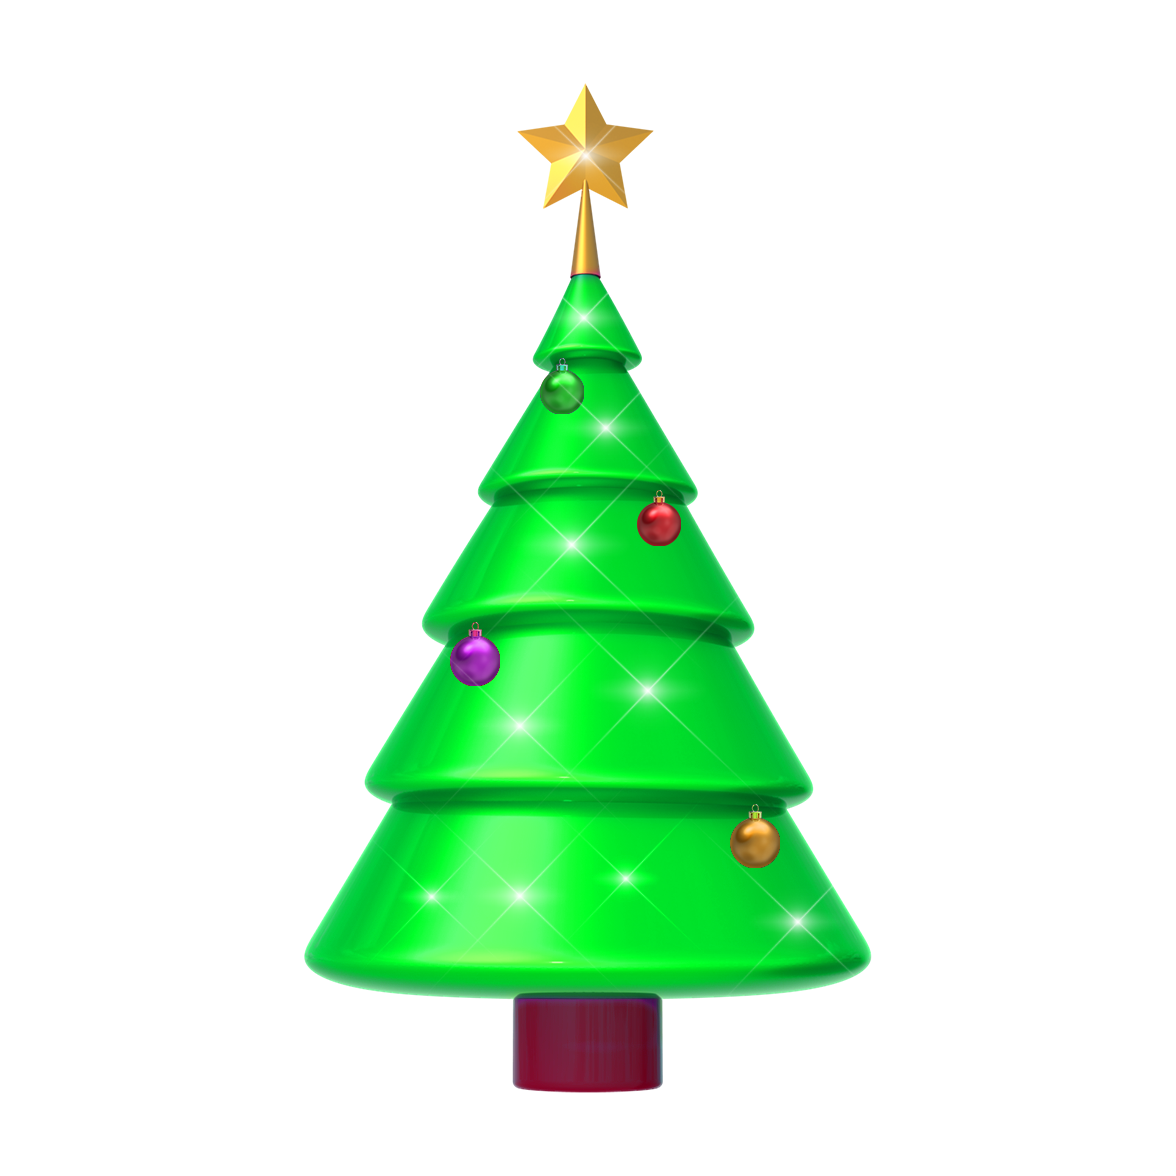 Free download green 3d Christmas tree png transparent